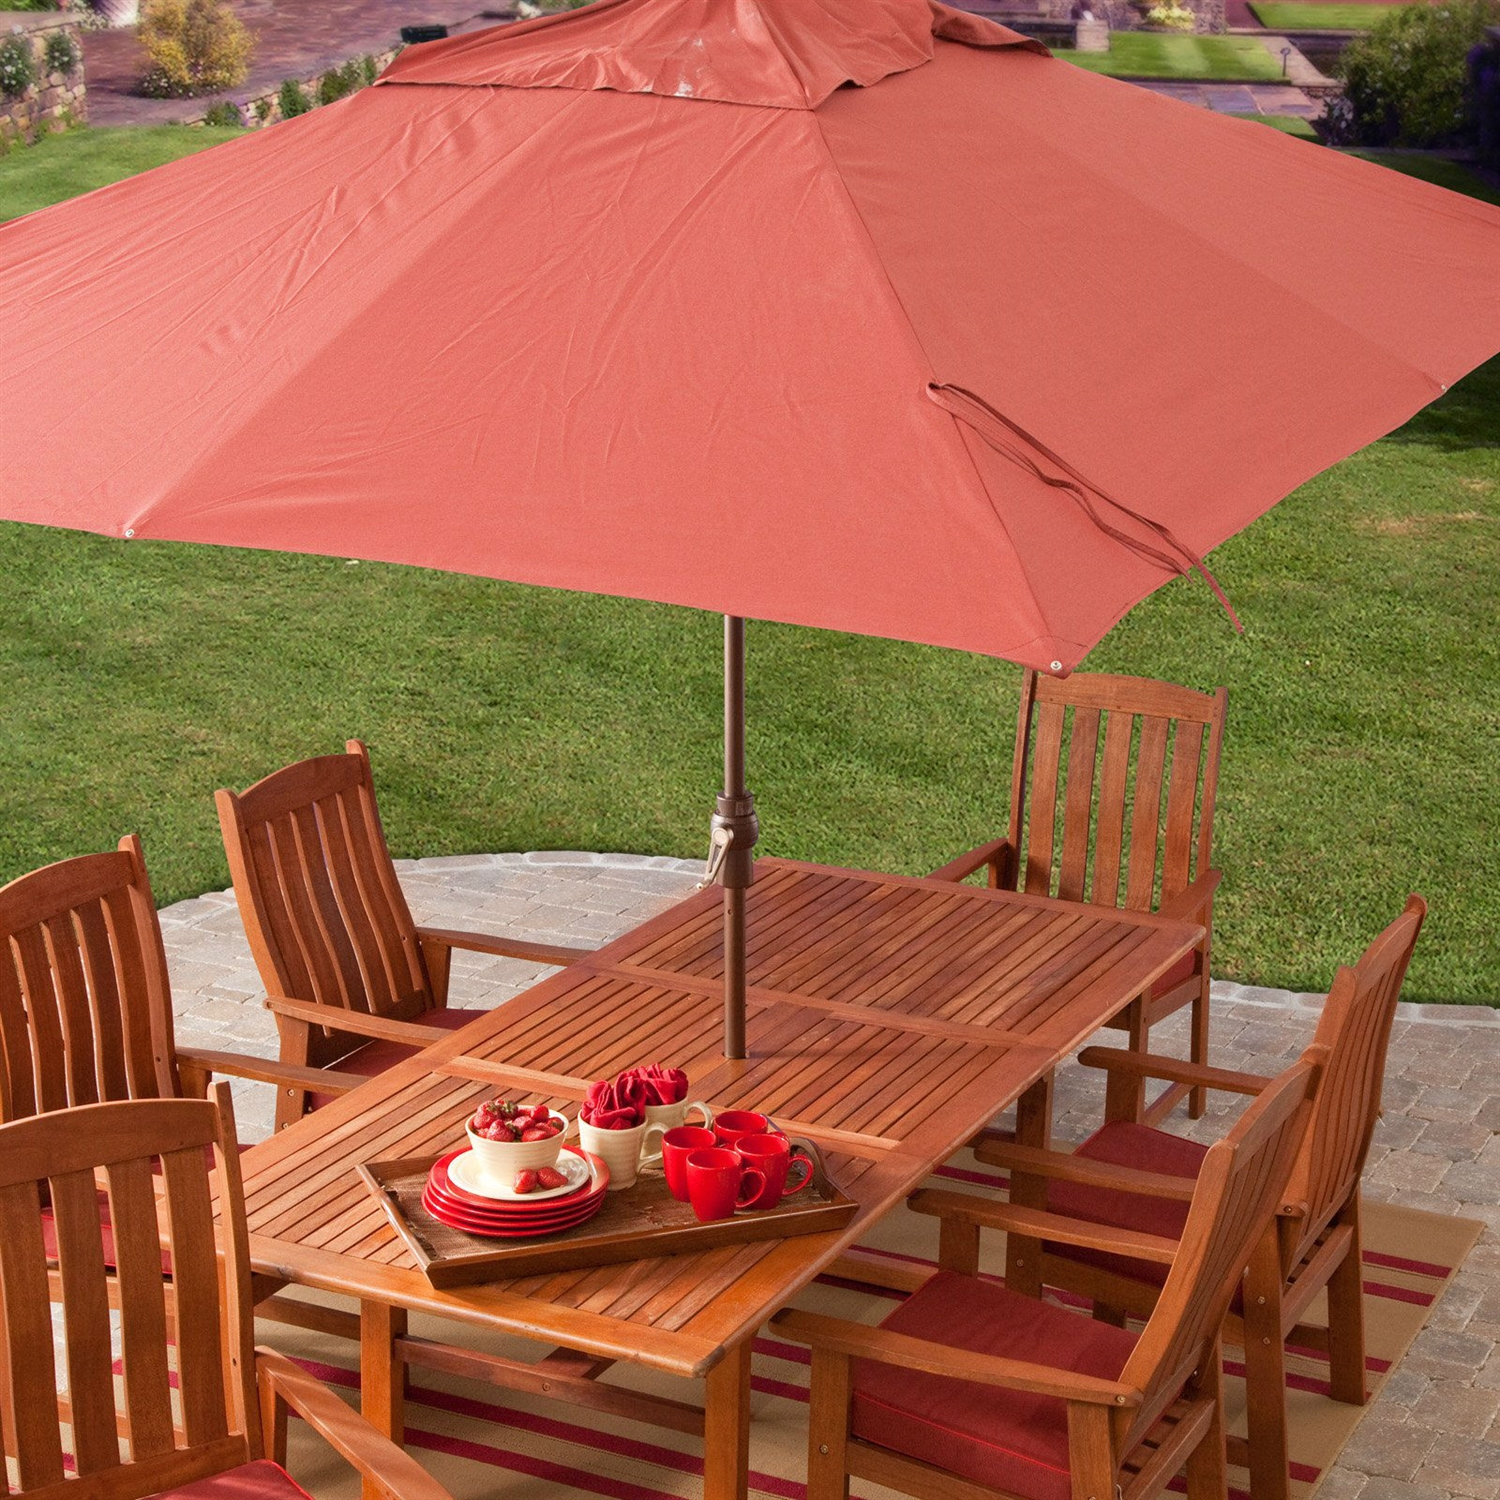 Great 8 X 11 Ft Rectangle Patio Umbrella With Red Orange Terracotta Canopy Shade